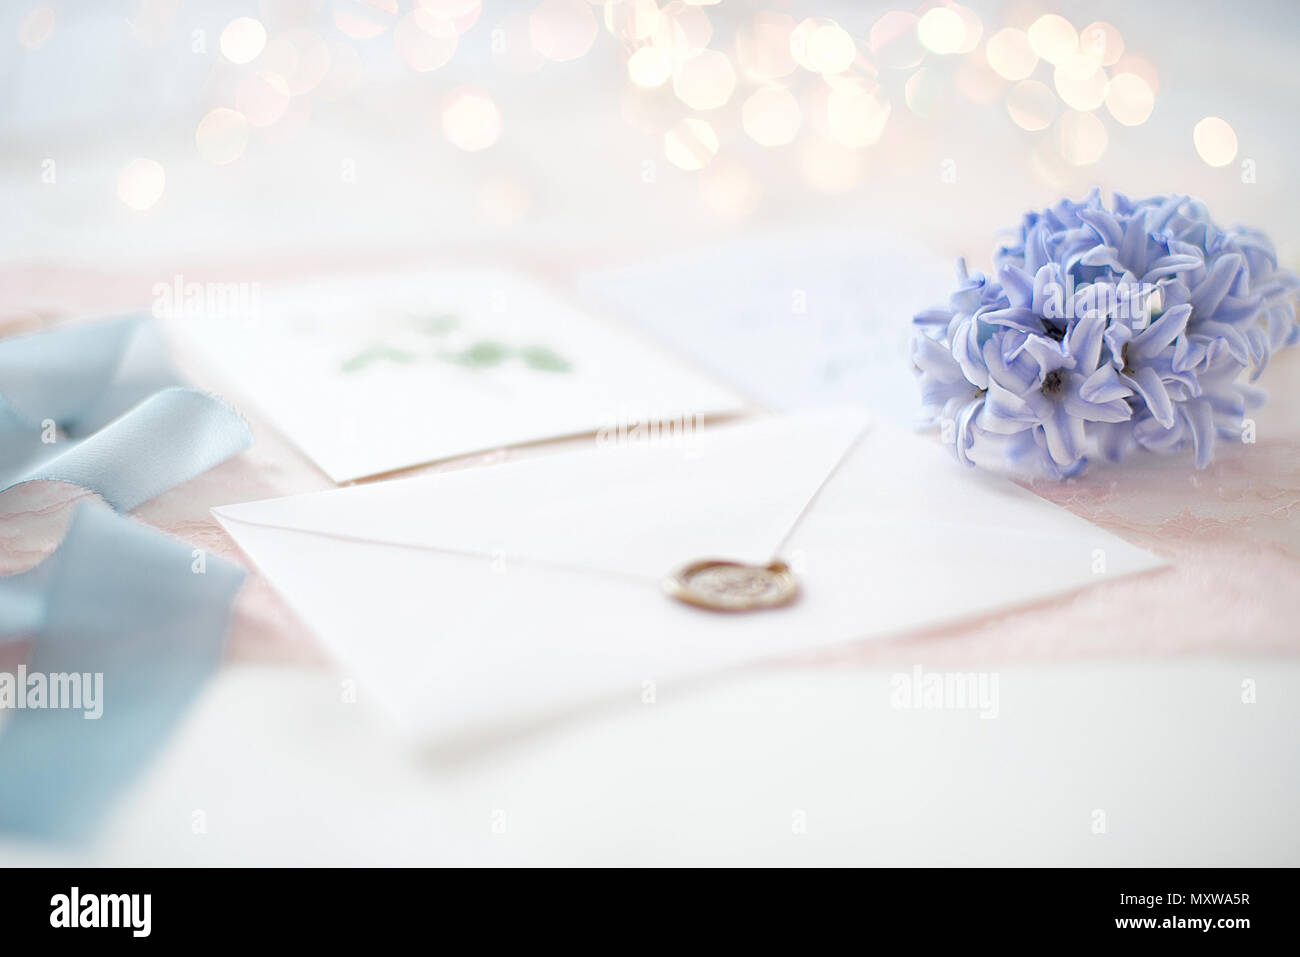 Wedding Invitation Card As A Decorated Letter With Blurred Lights On